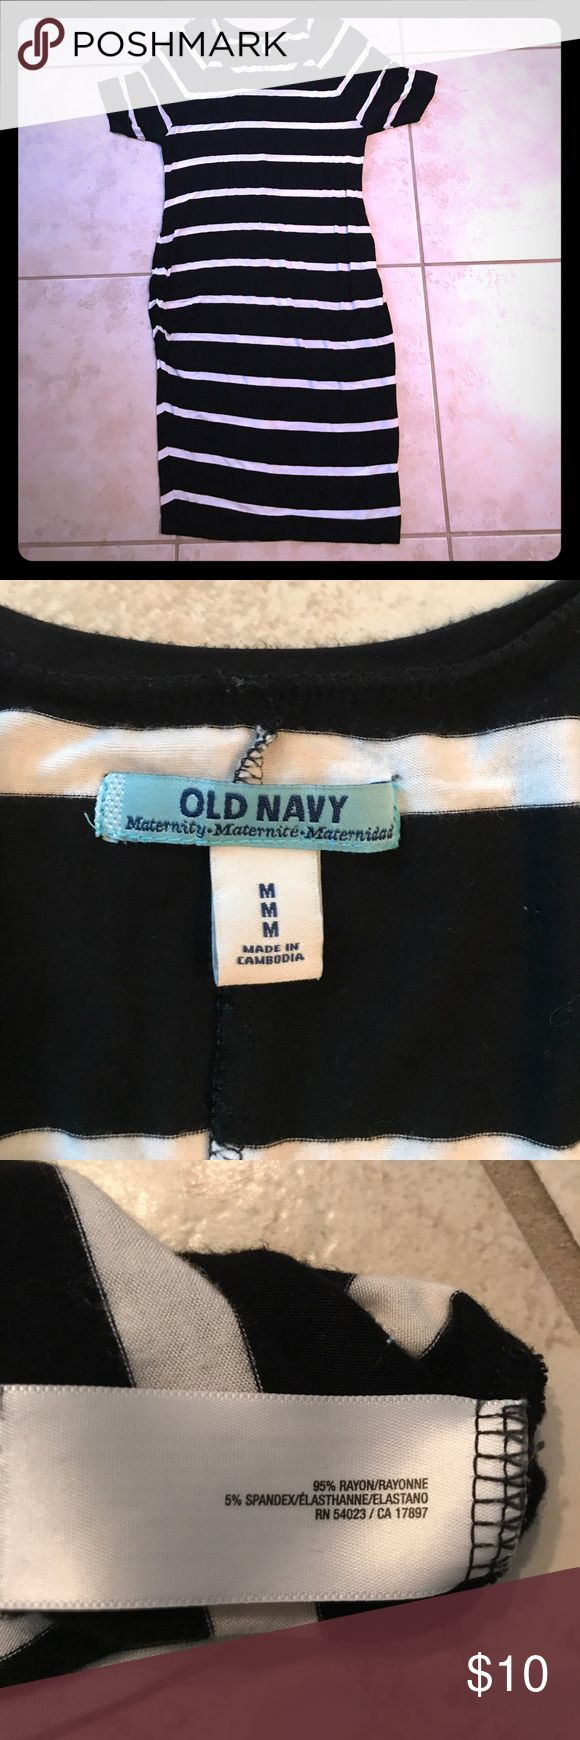 Black and white maternity dress. Old navy medium Black and white maternity dress. Old navy medium. Very soft, has stretchy rouching on the sides. Short sleeve. Hits just below the knee. Old Navy Dresses